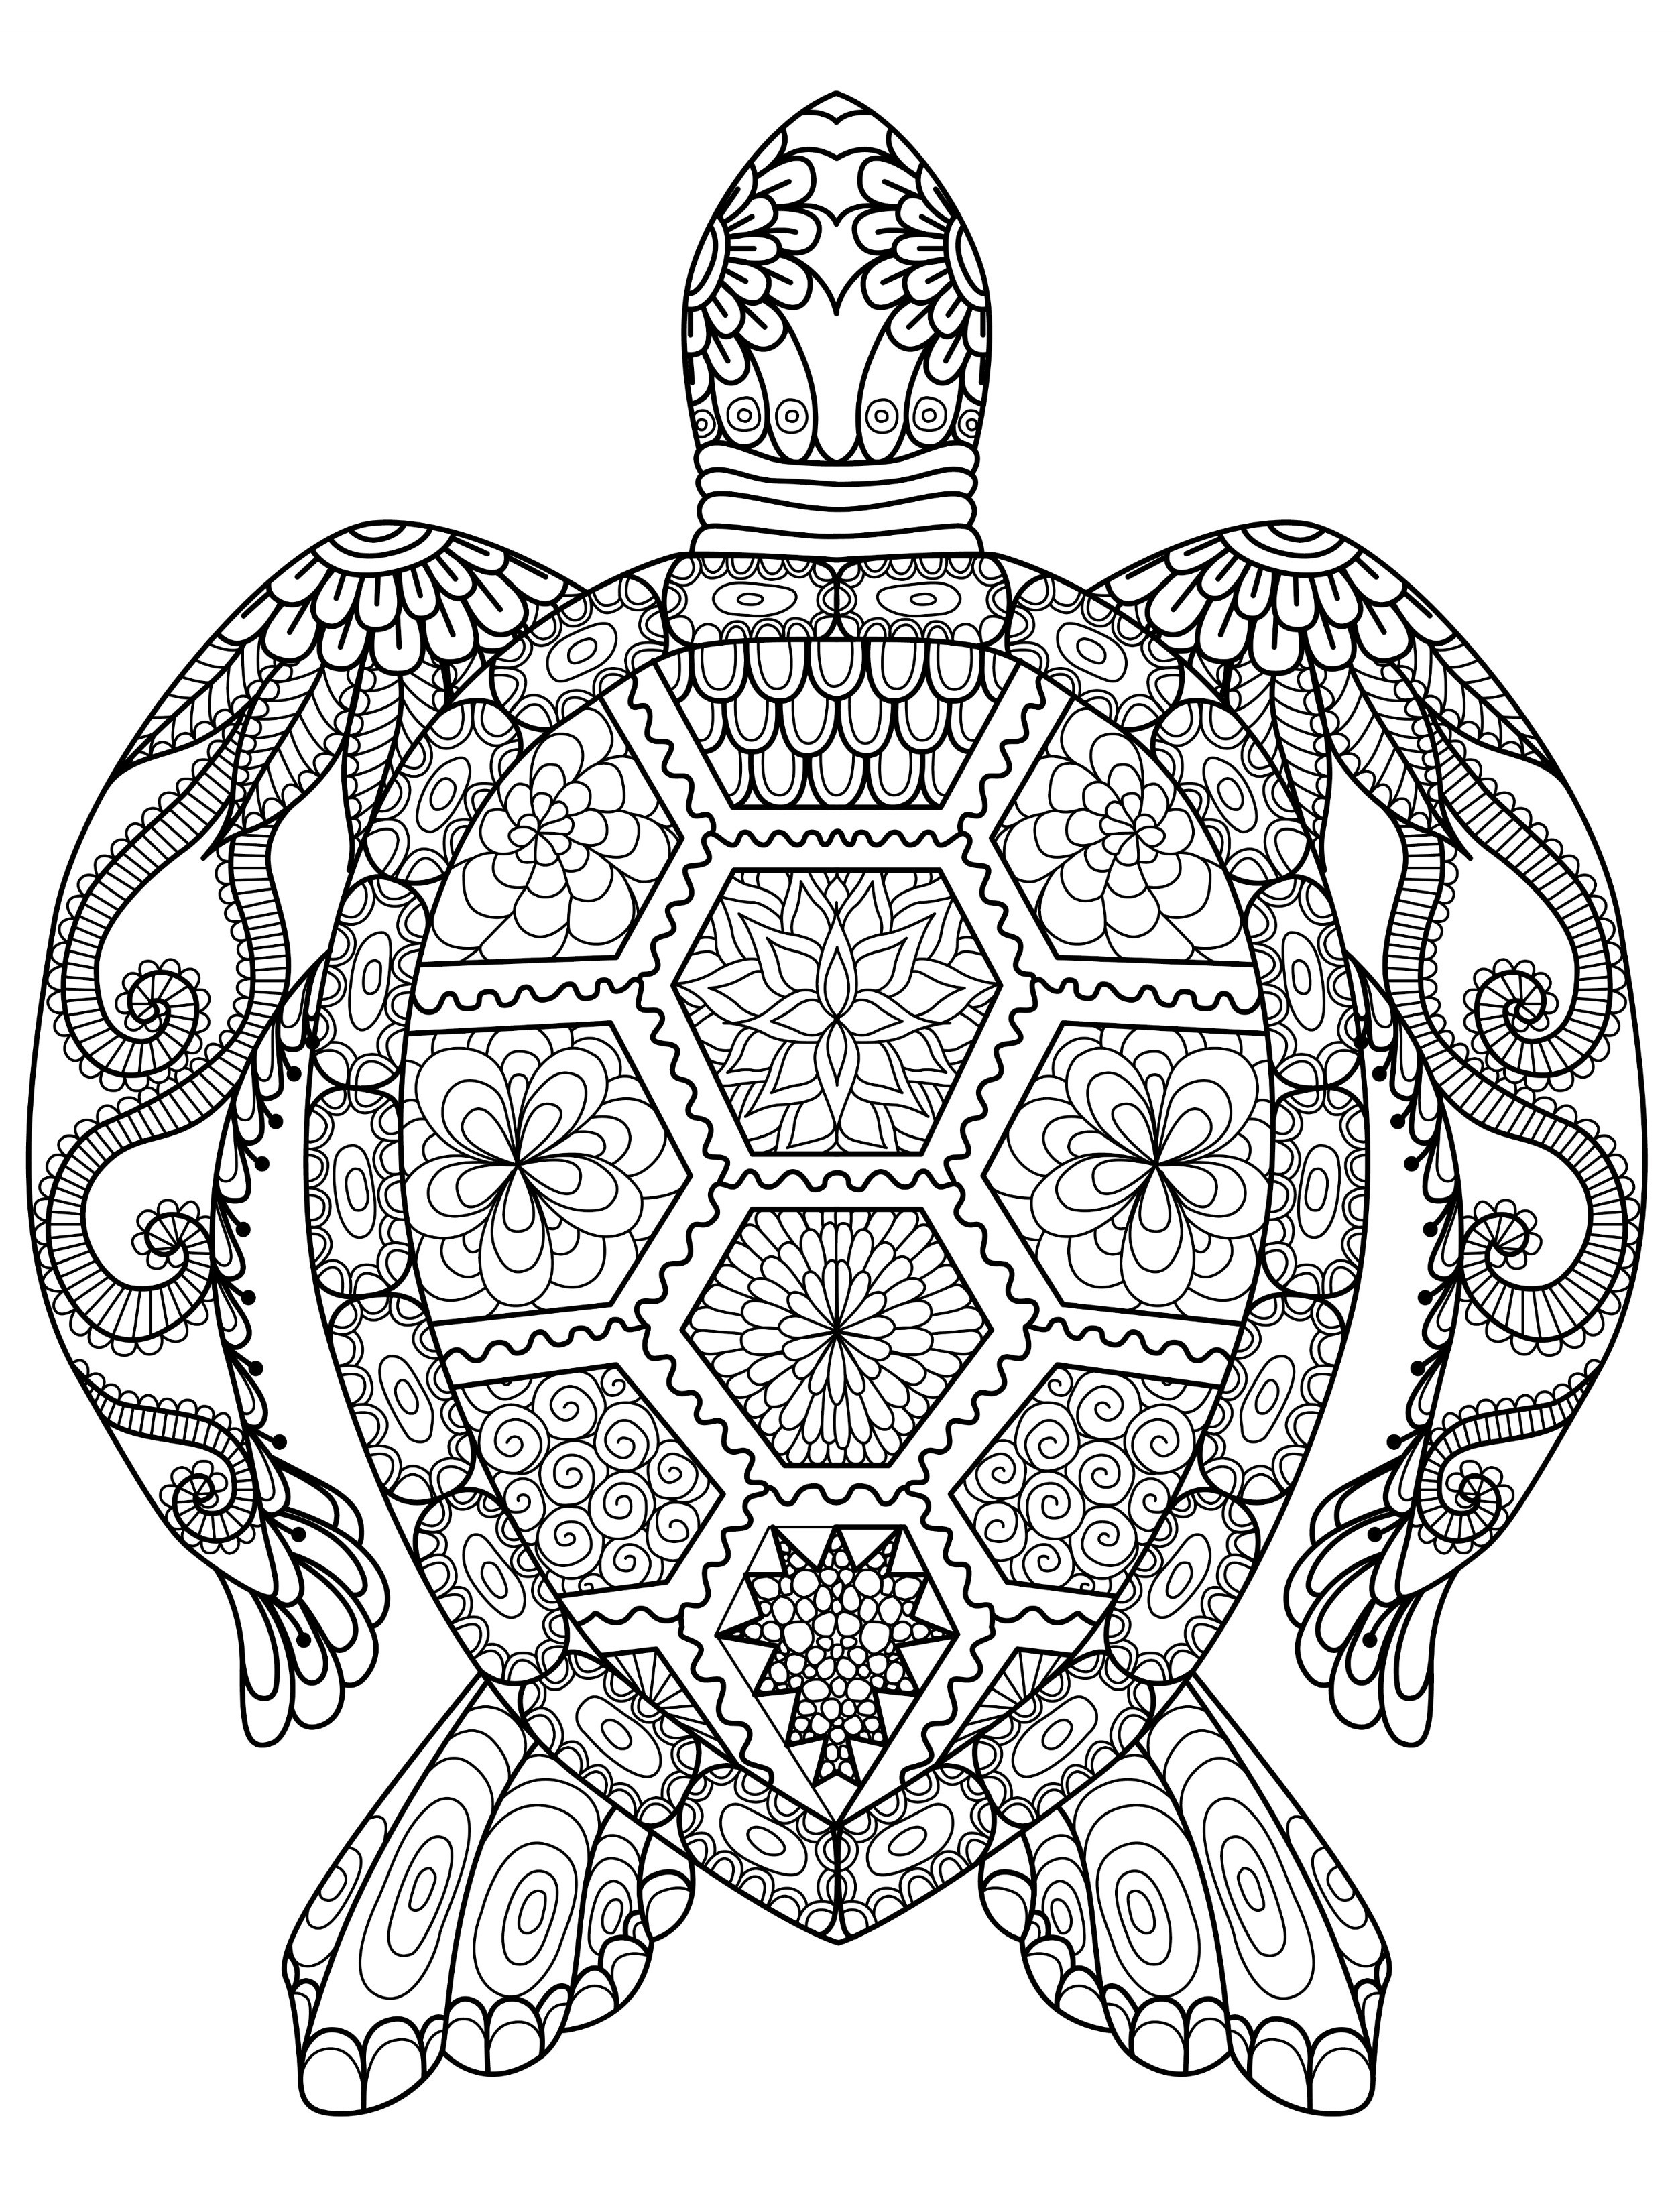 coloring worksheets hard hard coloring pages of animals at getcoloringscom free worksheets coloring hard